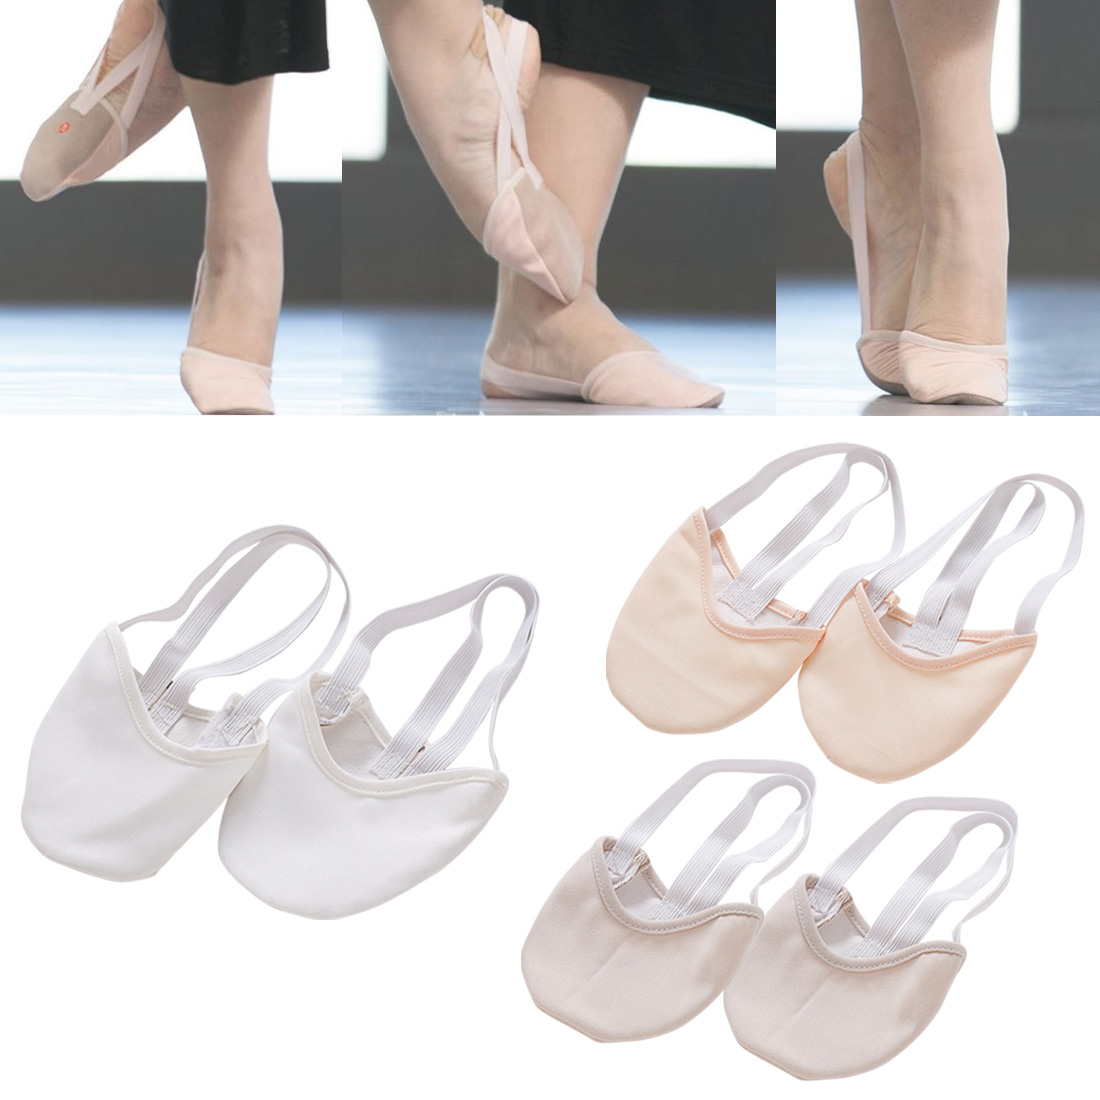 Pro Half Length Rhythmic Gymnastic Shoes Roupa Ginastica Child Adult Gymnastics Pig Skin Sole Shoes Beige Dancing Dance